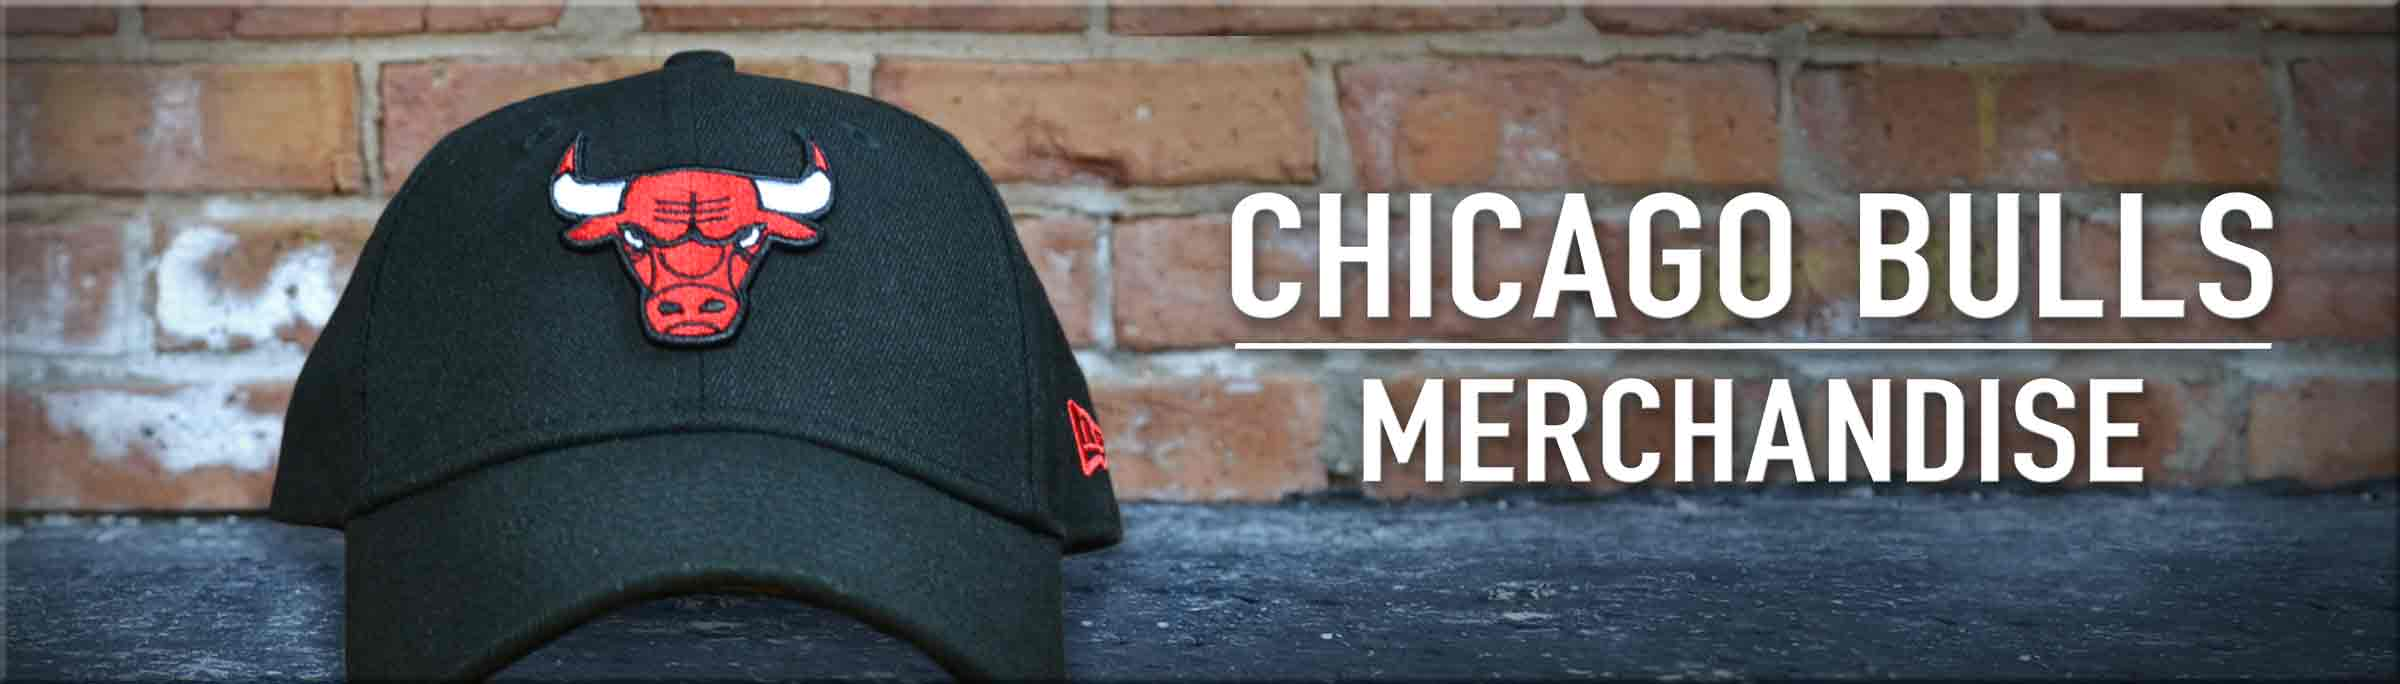 Shop Chicago Bulls Merchandise, including this Chicago Bulls Black 9FIFTY Snapback Adjustable Cap from New Era